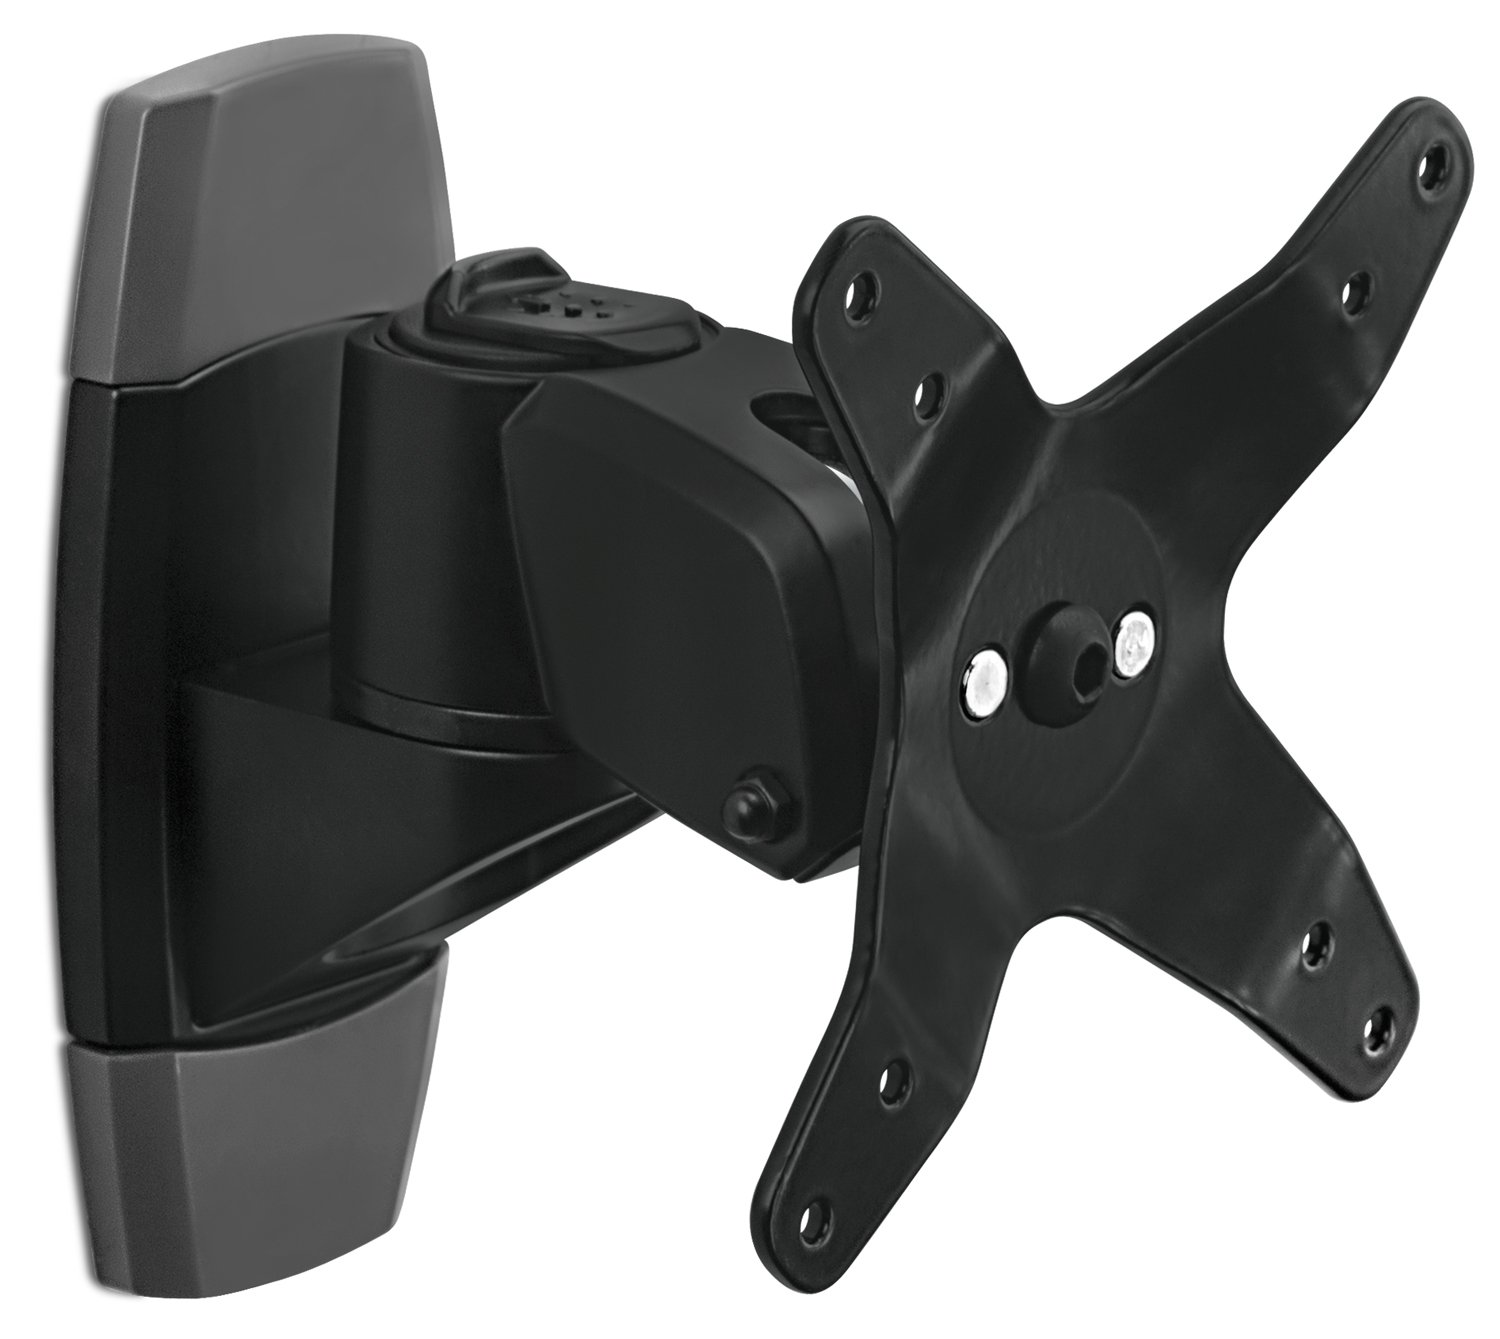 Mount-It! Monitor Wall Mount for TVs and Computers that Rotates, Swivels, and Tilts, VESA Compatible 75 and 100, Single Display Fits Screens 19 20 21.5 22 24 27 30 32 34 inches, Black (MI-31114B)